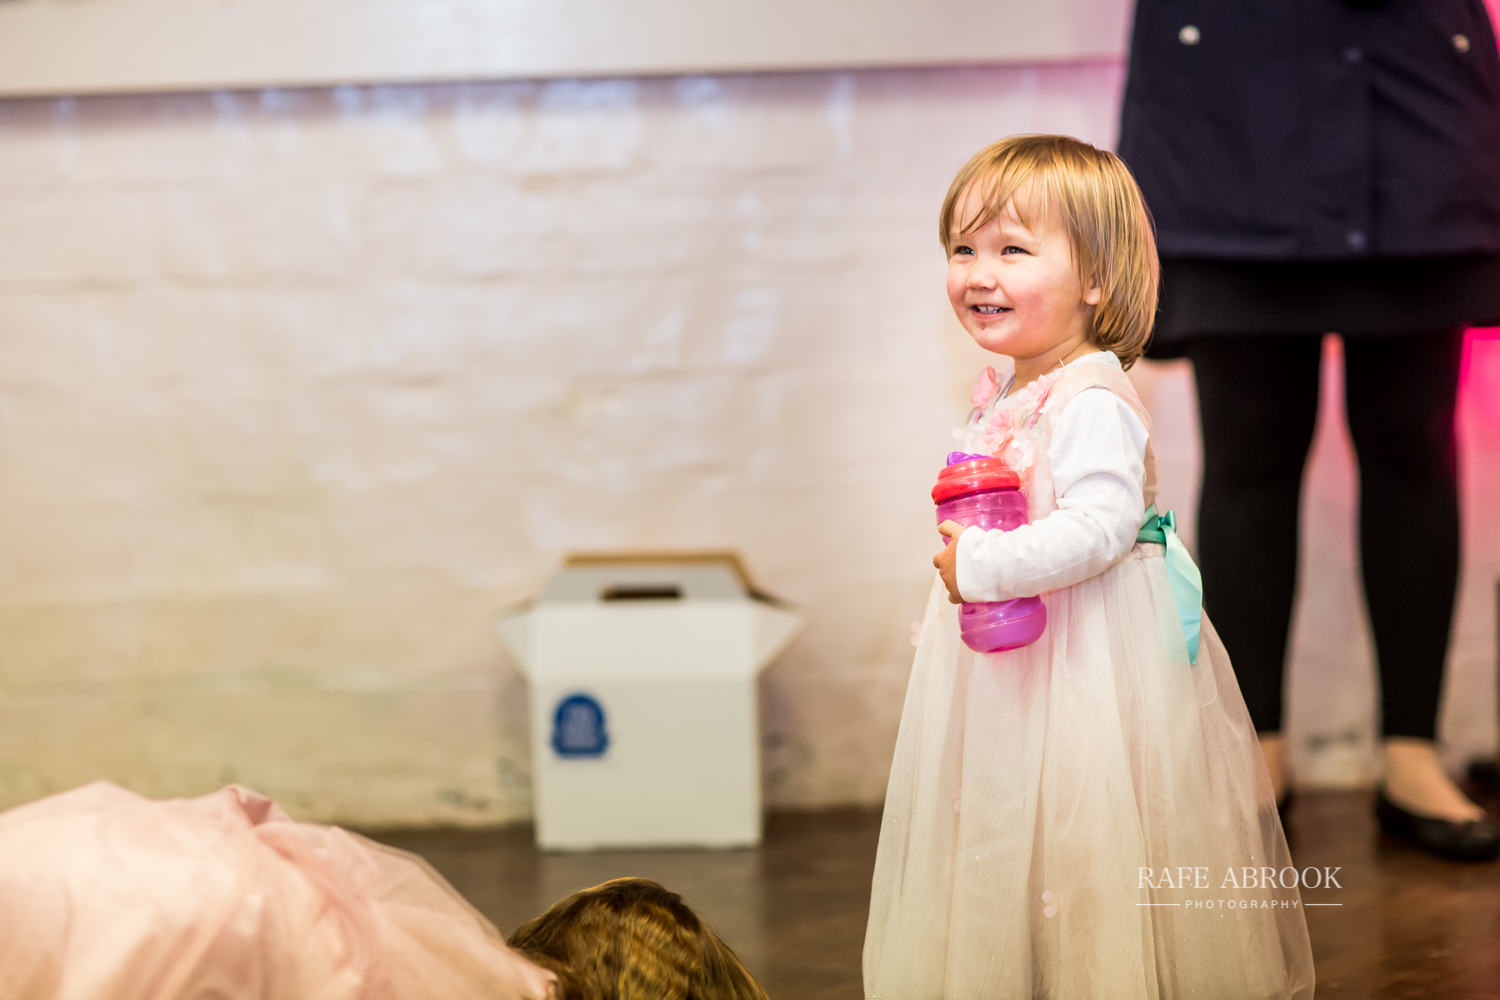 thursley village hall guildford surrey wedding hertfordshire wedding photographer-1423.jpg